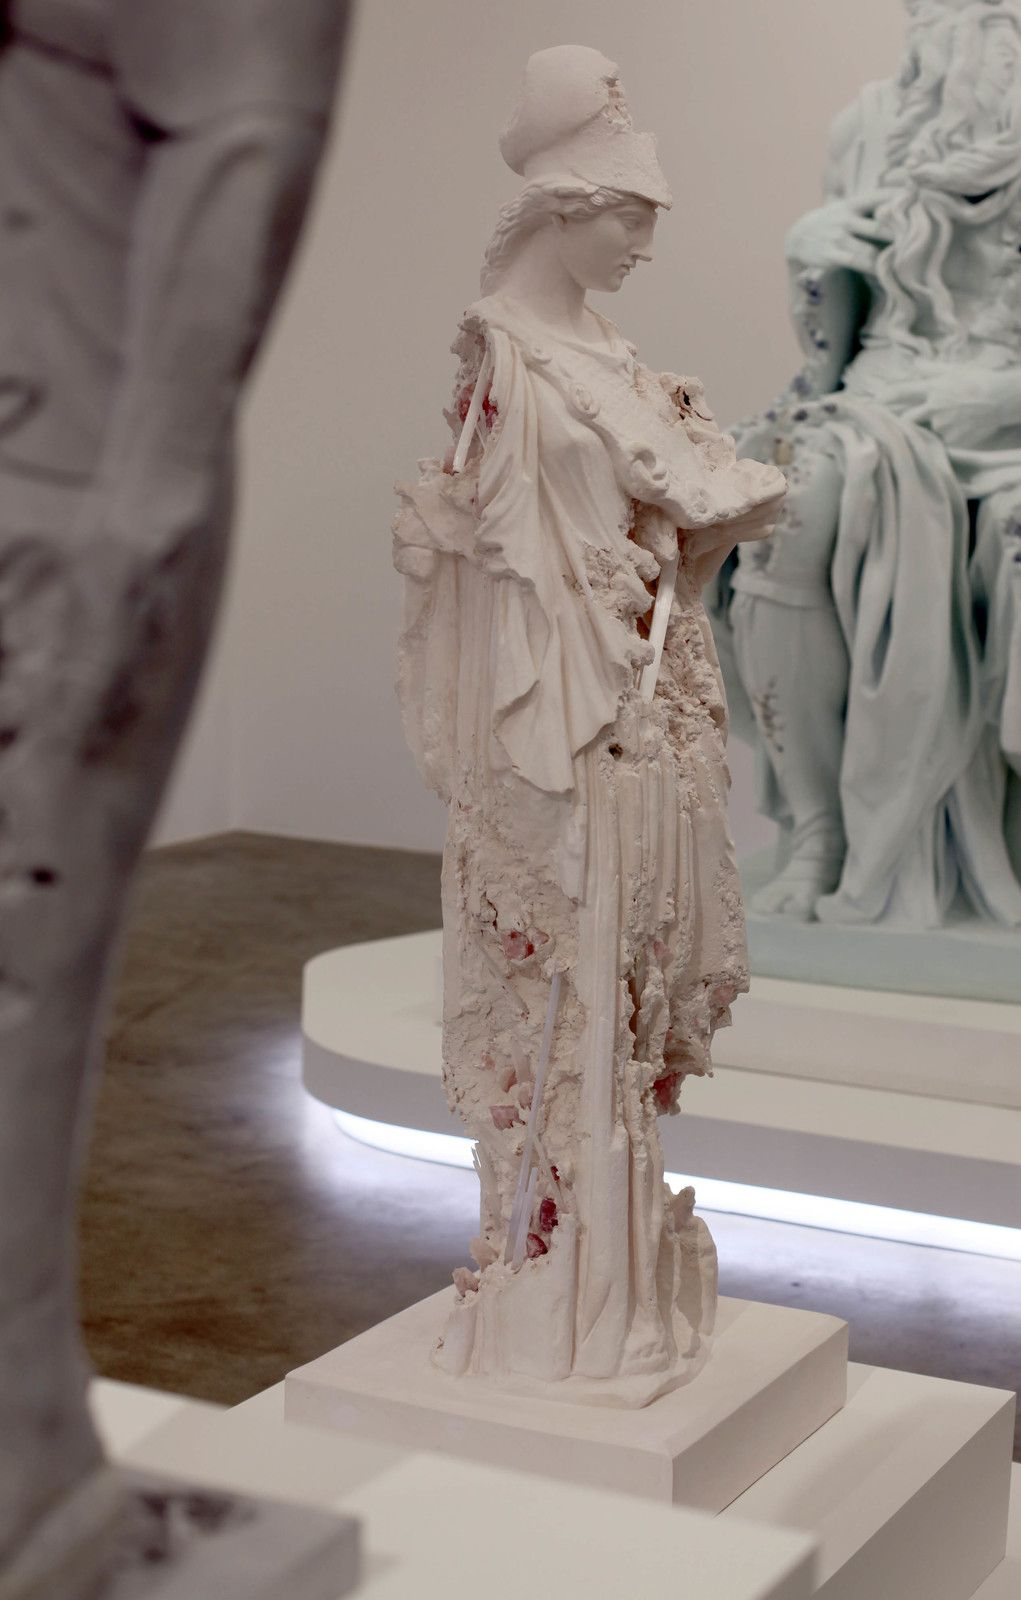 """Rose Quartz Eroded Athena Helmeted"", 2019 de Daniel ARSHAM - Courtesy de l'artiste et la galerie Perrotin © Photo Éric Simon"